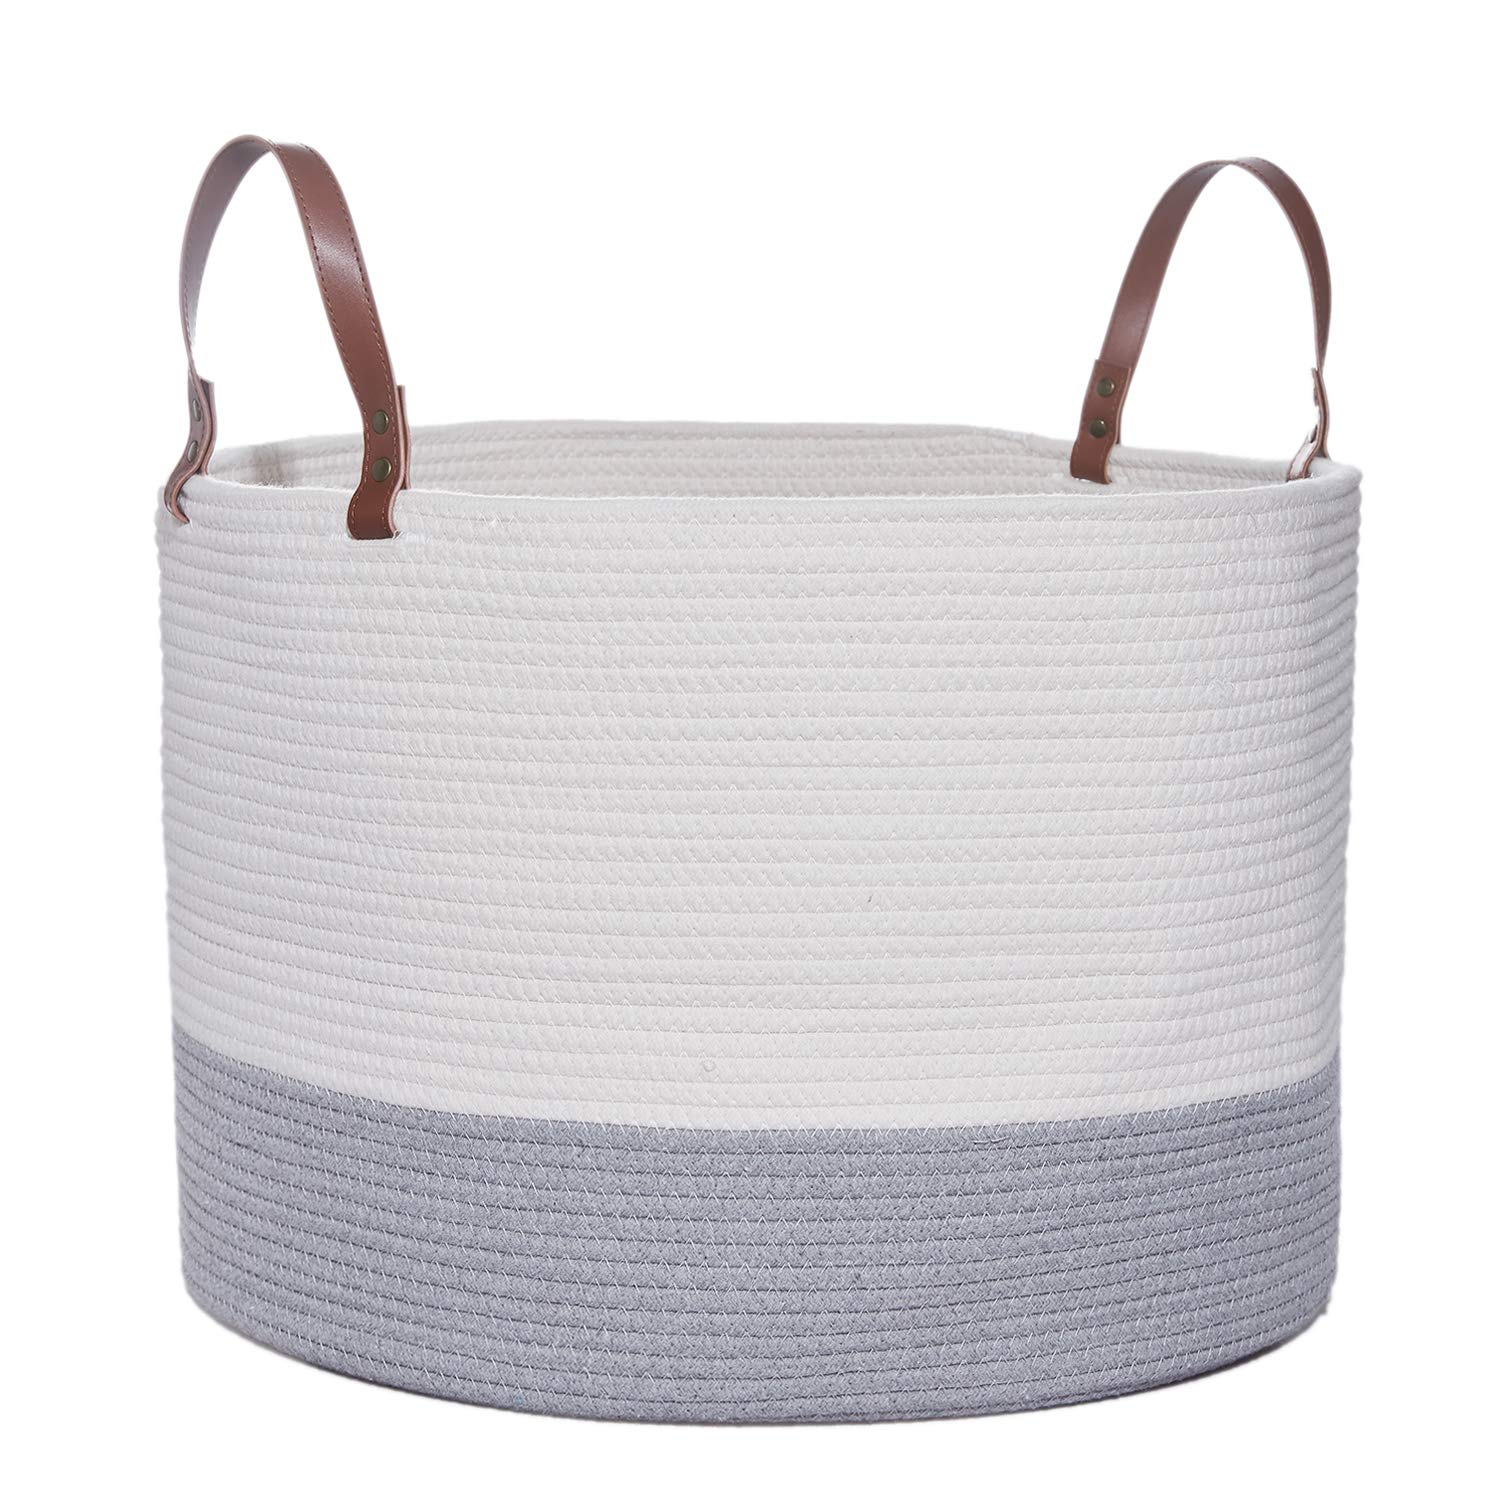 Large Woven Cotton Rope Storage Basket, Baby Laundry Hamper Storage Bin Baskets with Leather Handles for Organize Toys, Blanket, Diaper or Home Decor